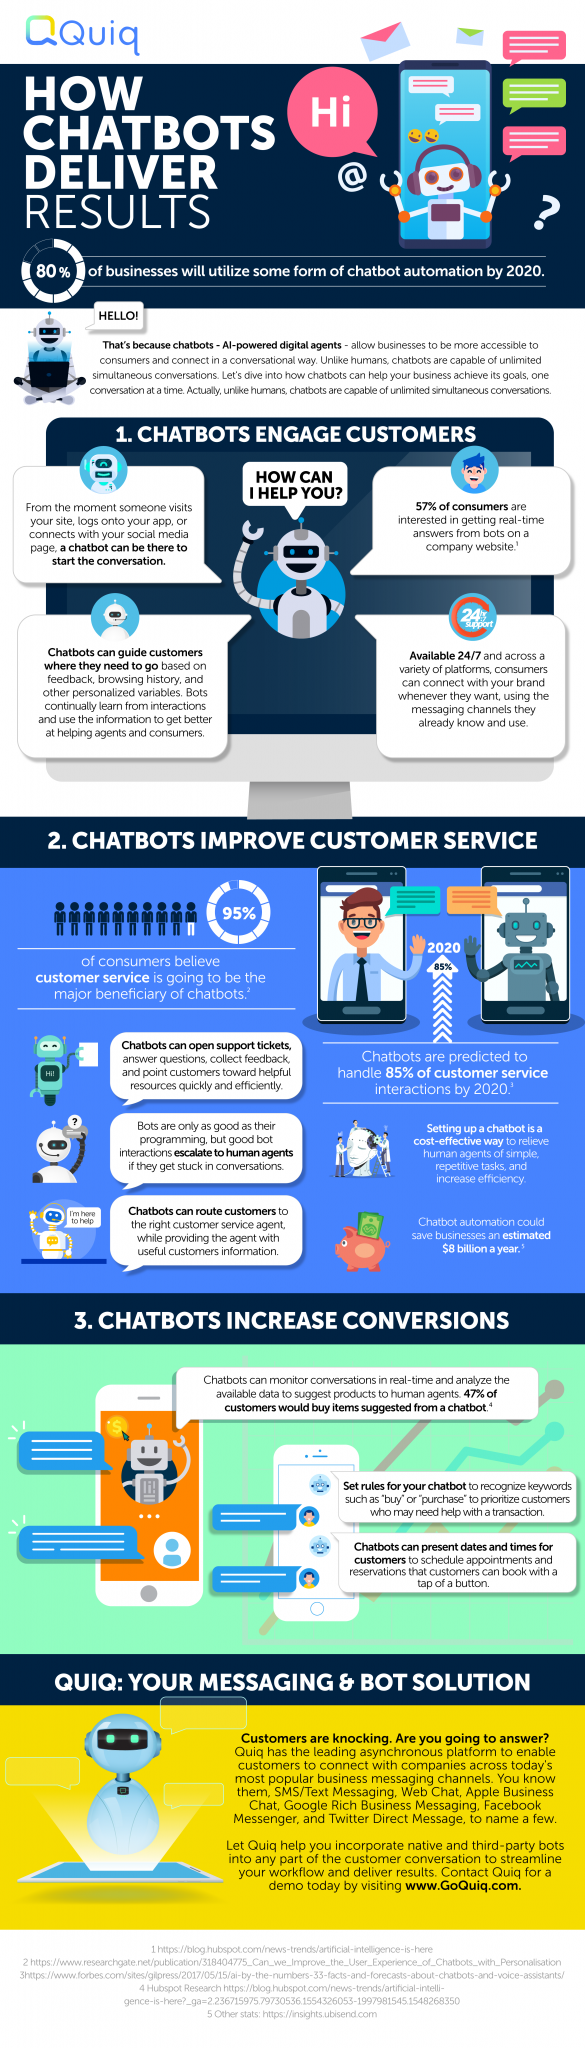 Chatbots deliver results for customer experience and beyond